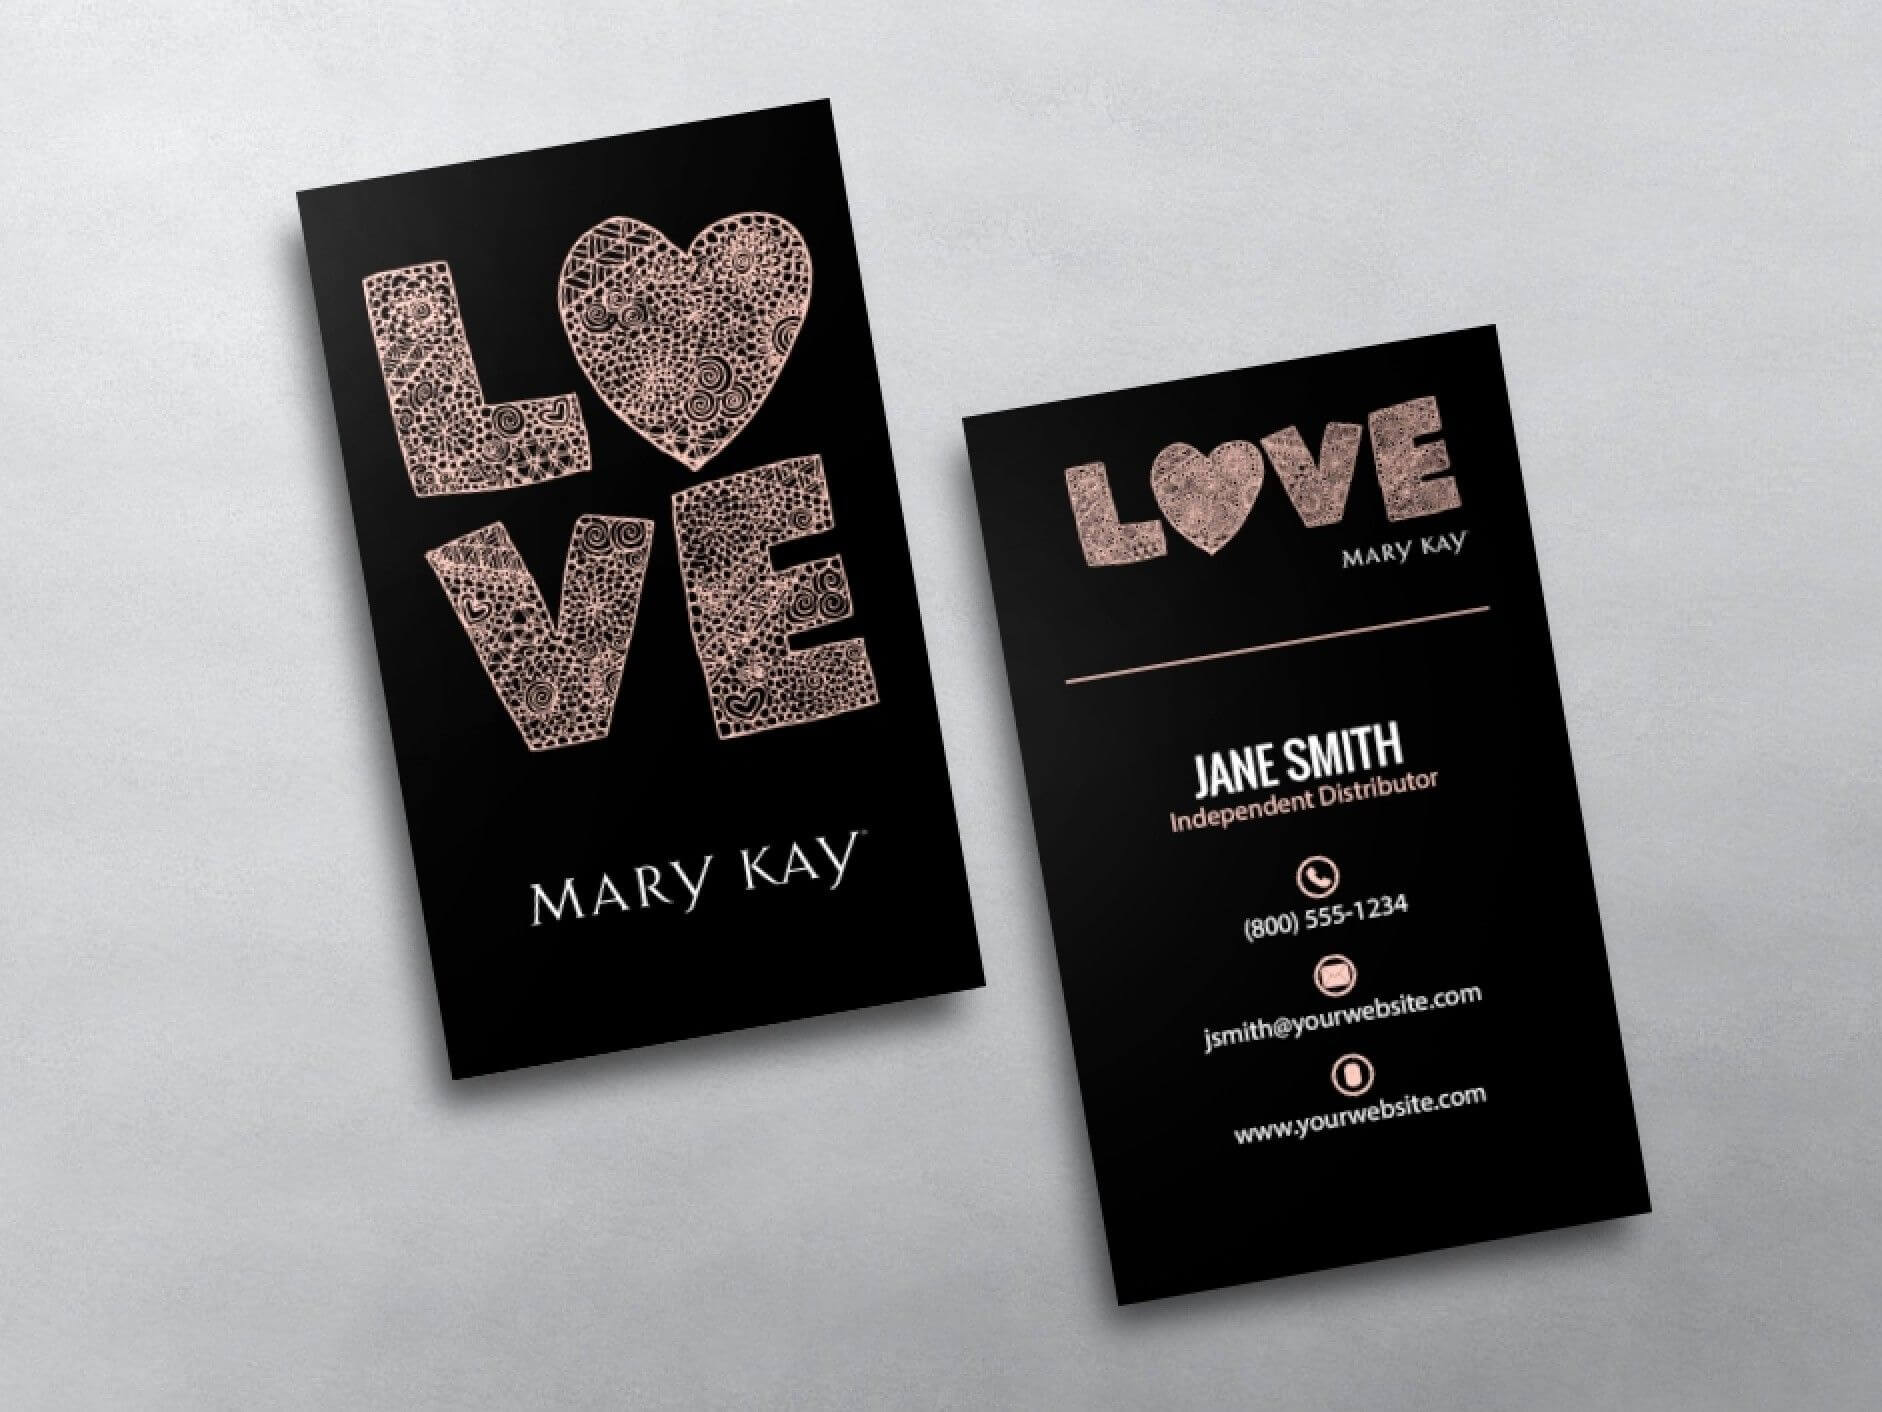 Mary Kay Business Cards | Business Card Templates In 2019 intended for Mary Kay Business Cards Templates Free